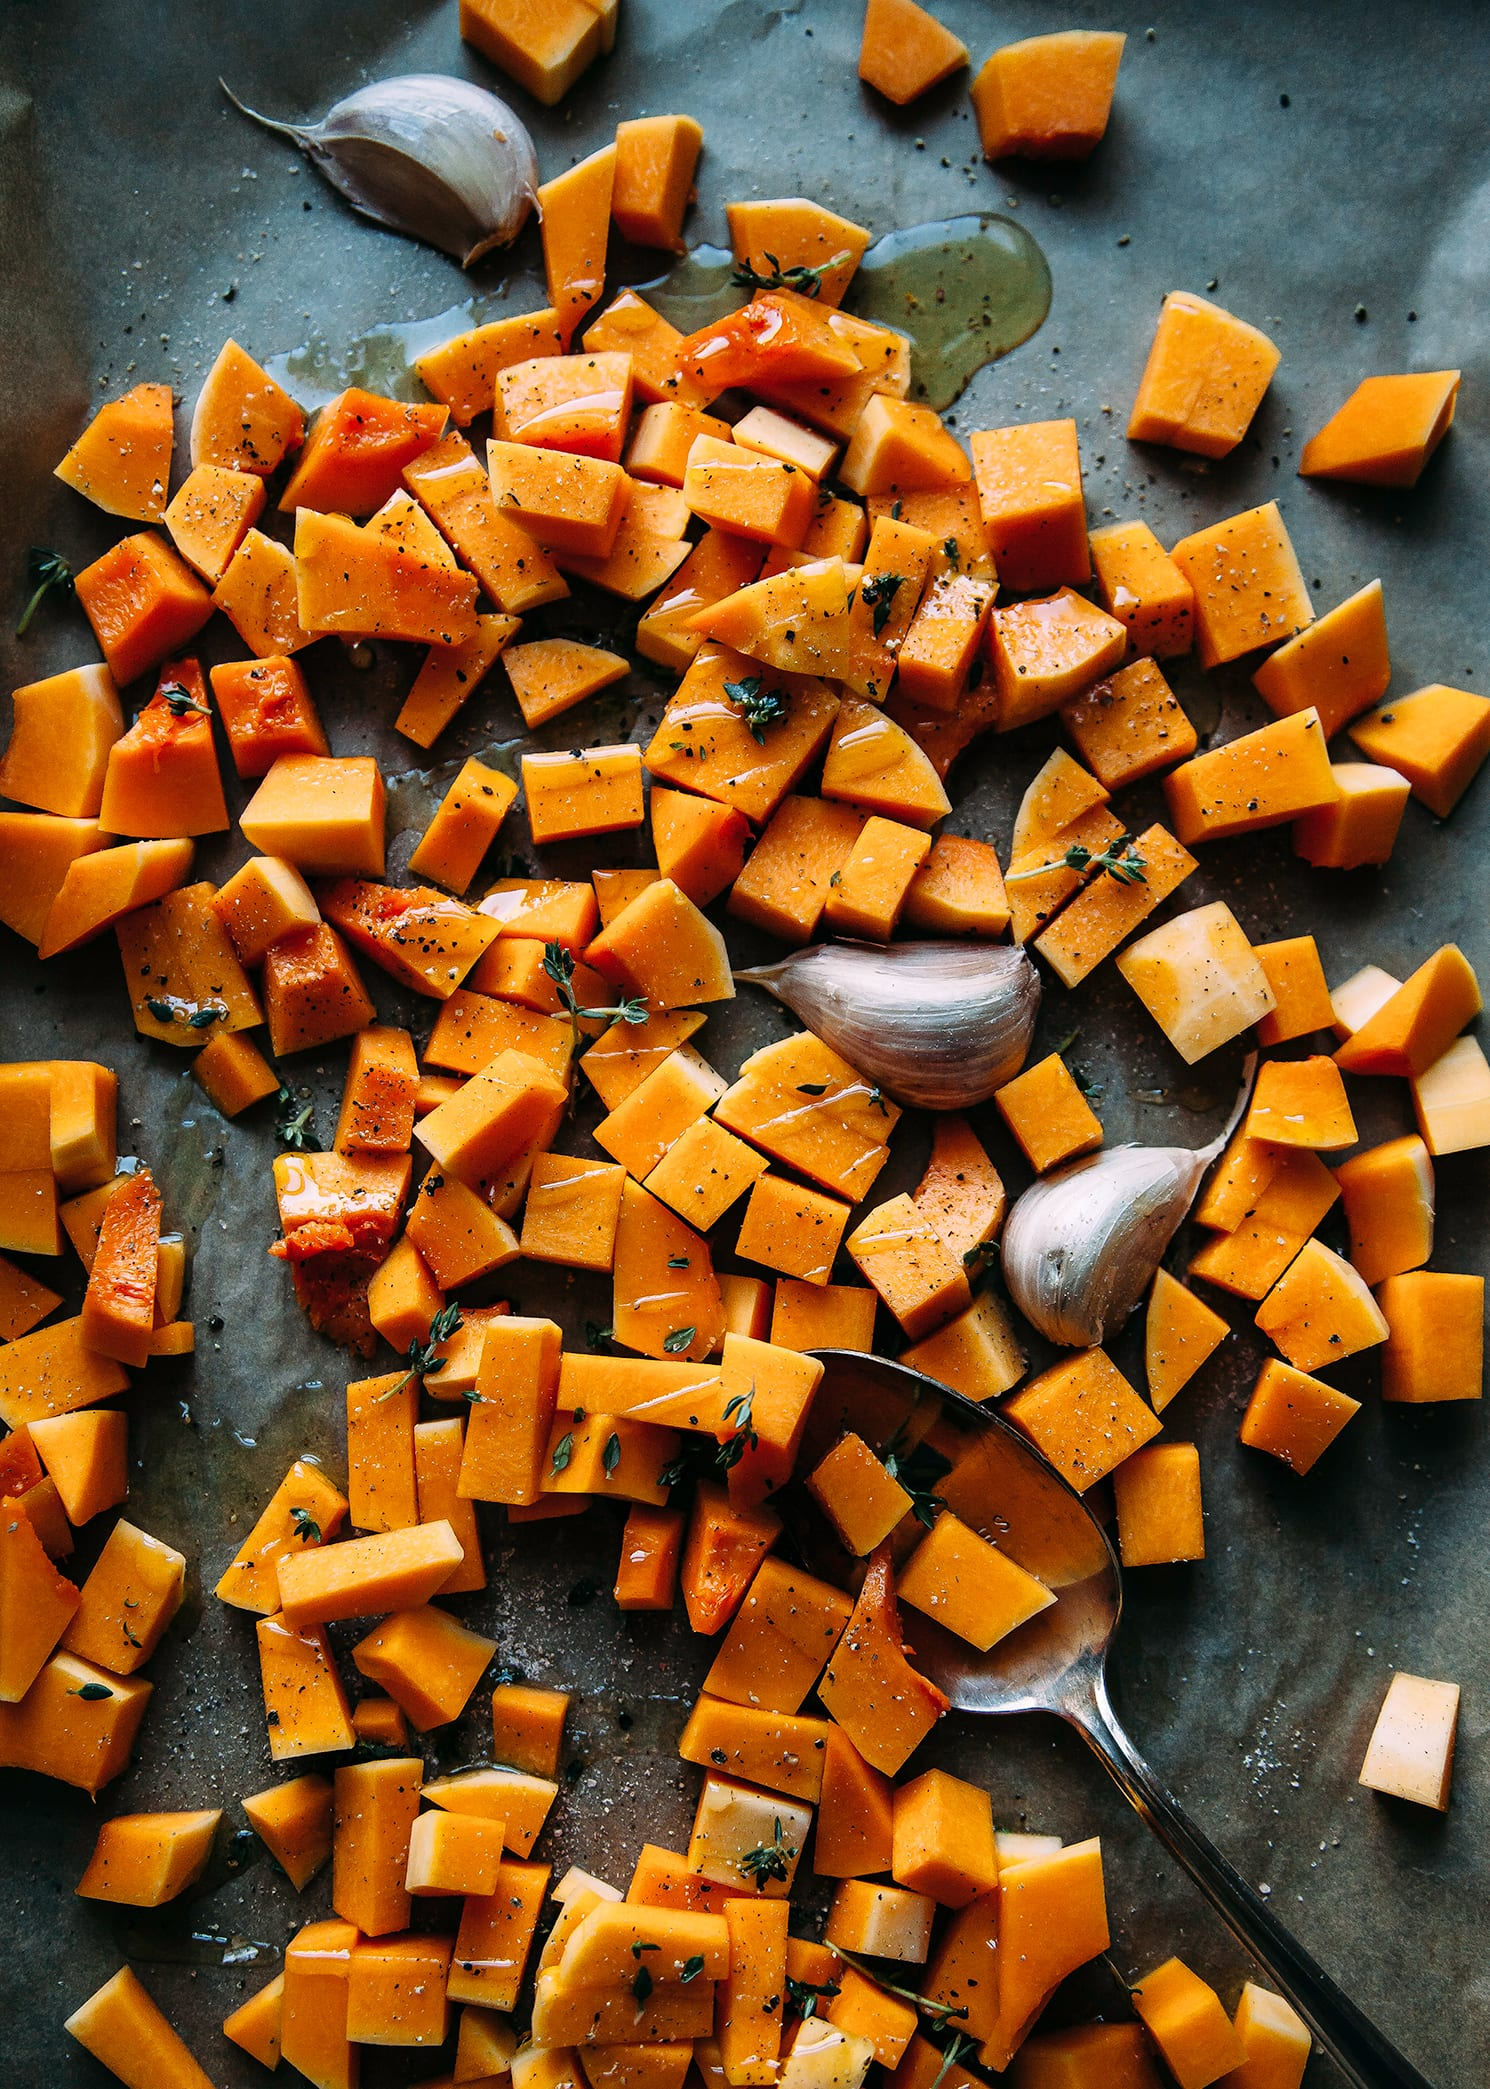 Overhead shot of butternut squash cubes and garlic cloves on a baking sheet before roasting.